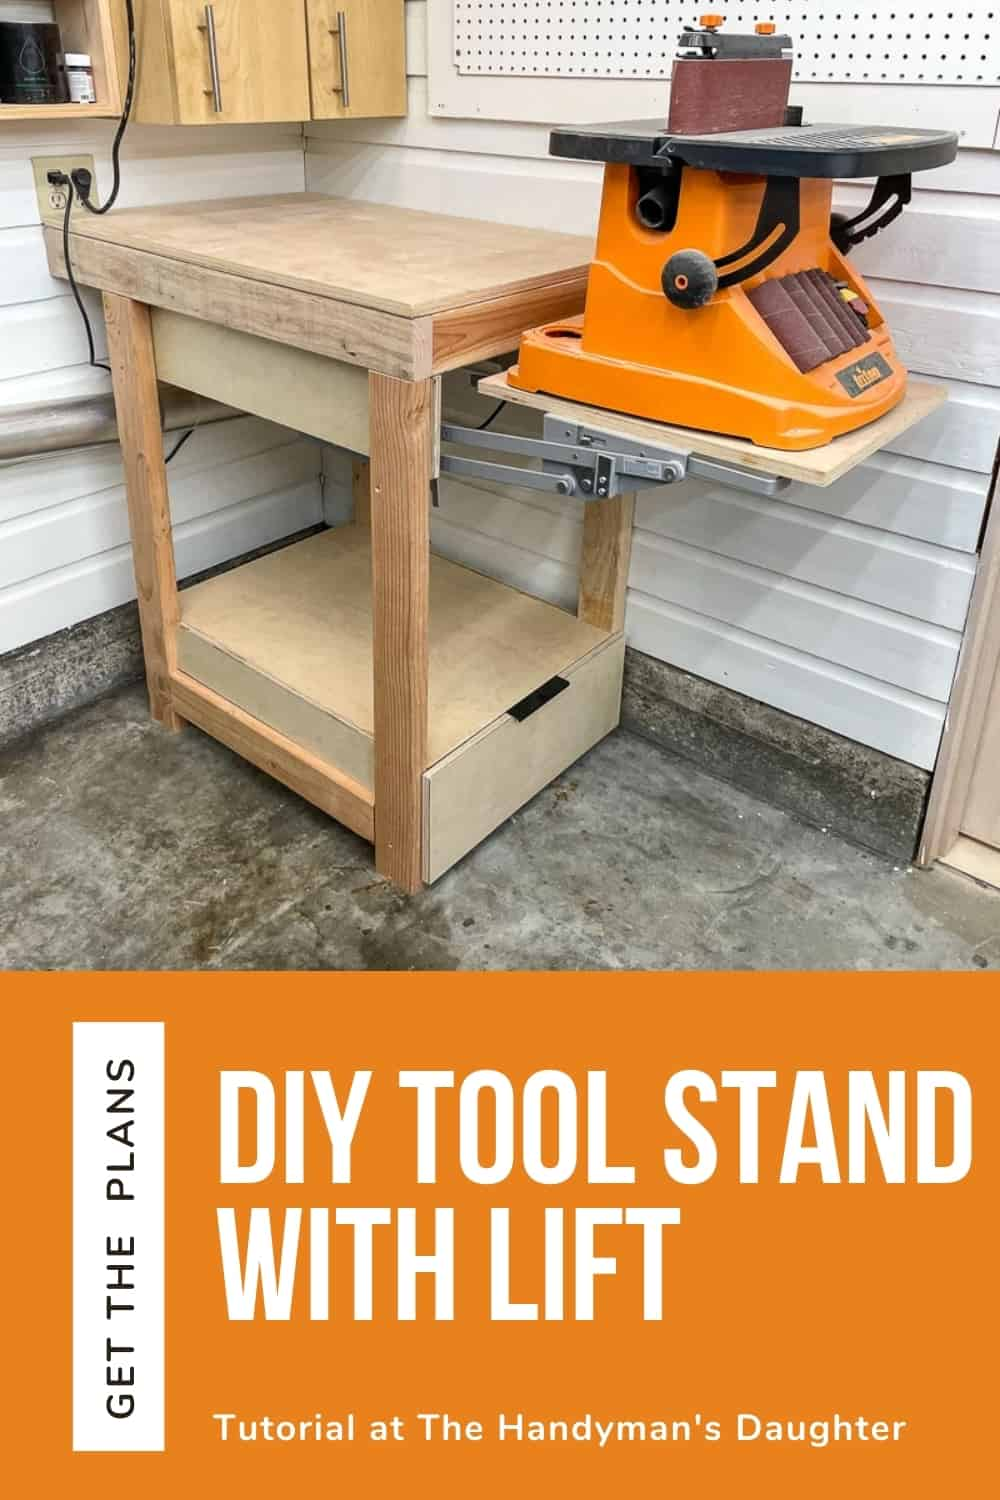 DIY Tool Stand with Lift - Plans and Tutorial by The Handyman's Daughter